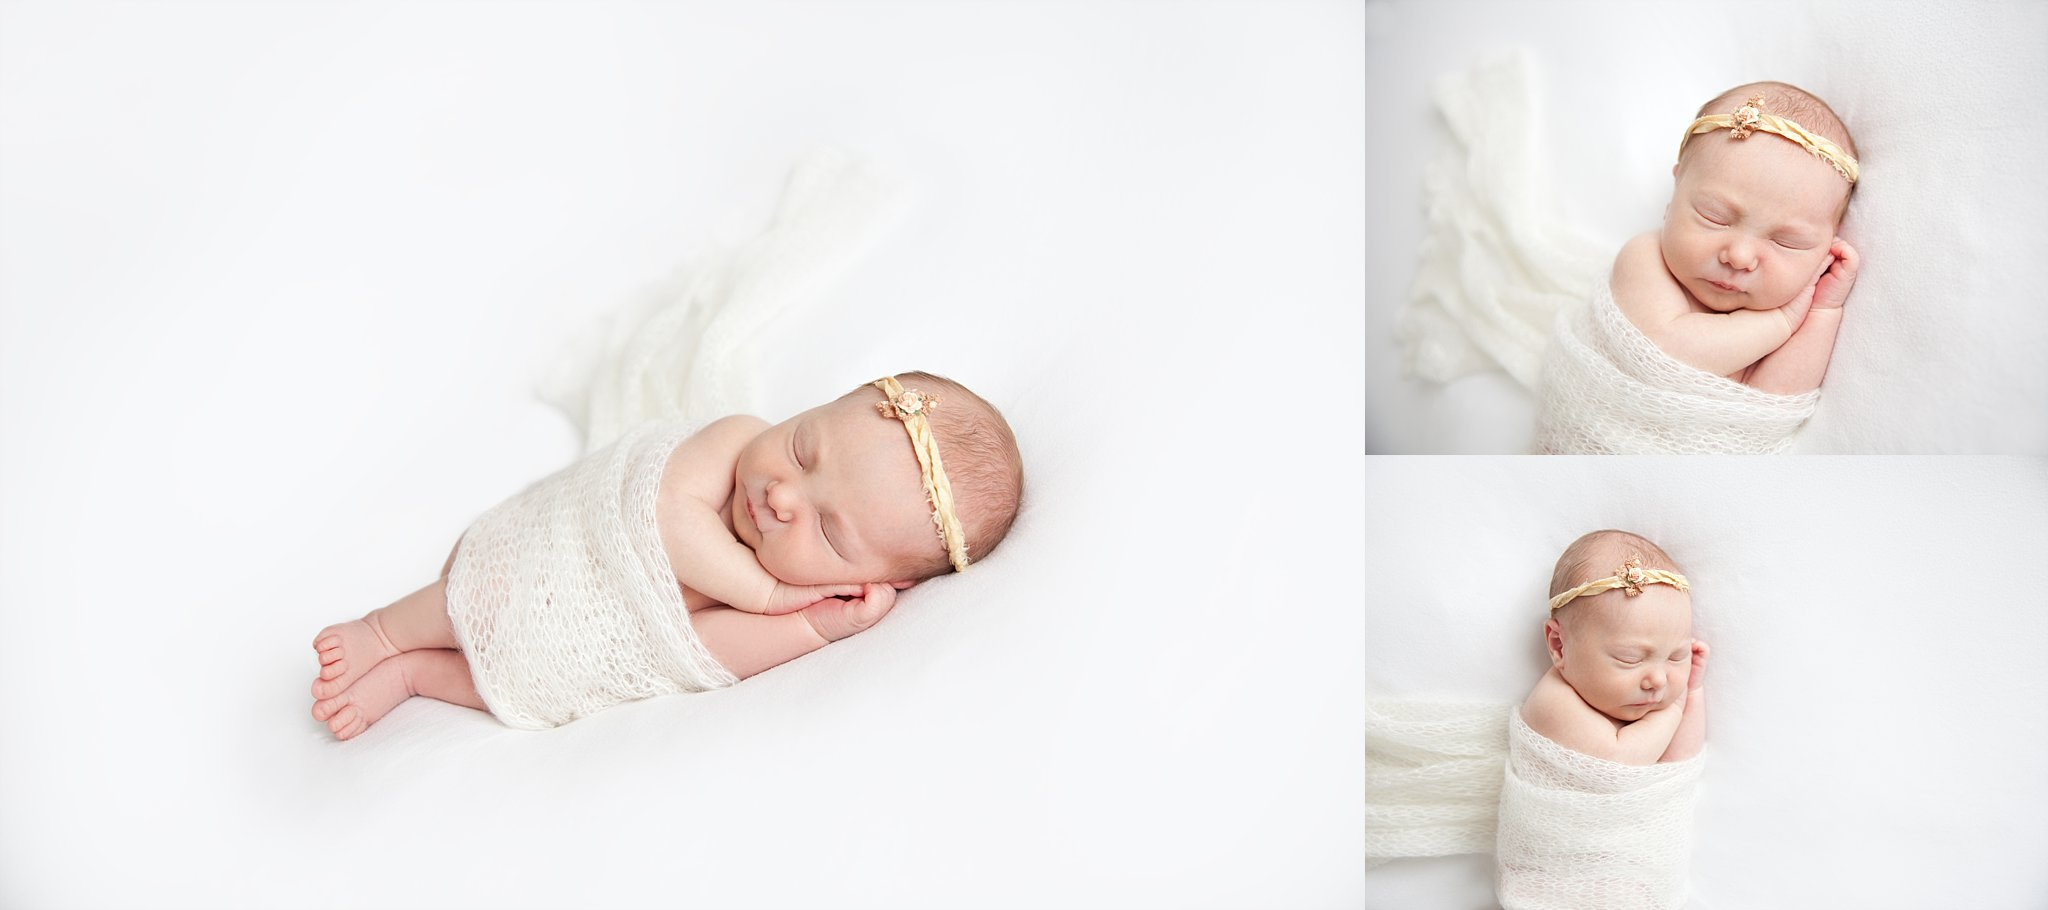 Newborn photographer in Woodstock